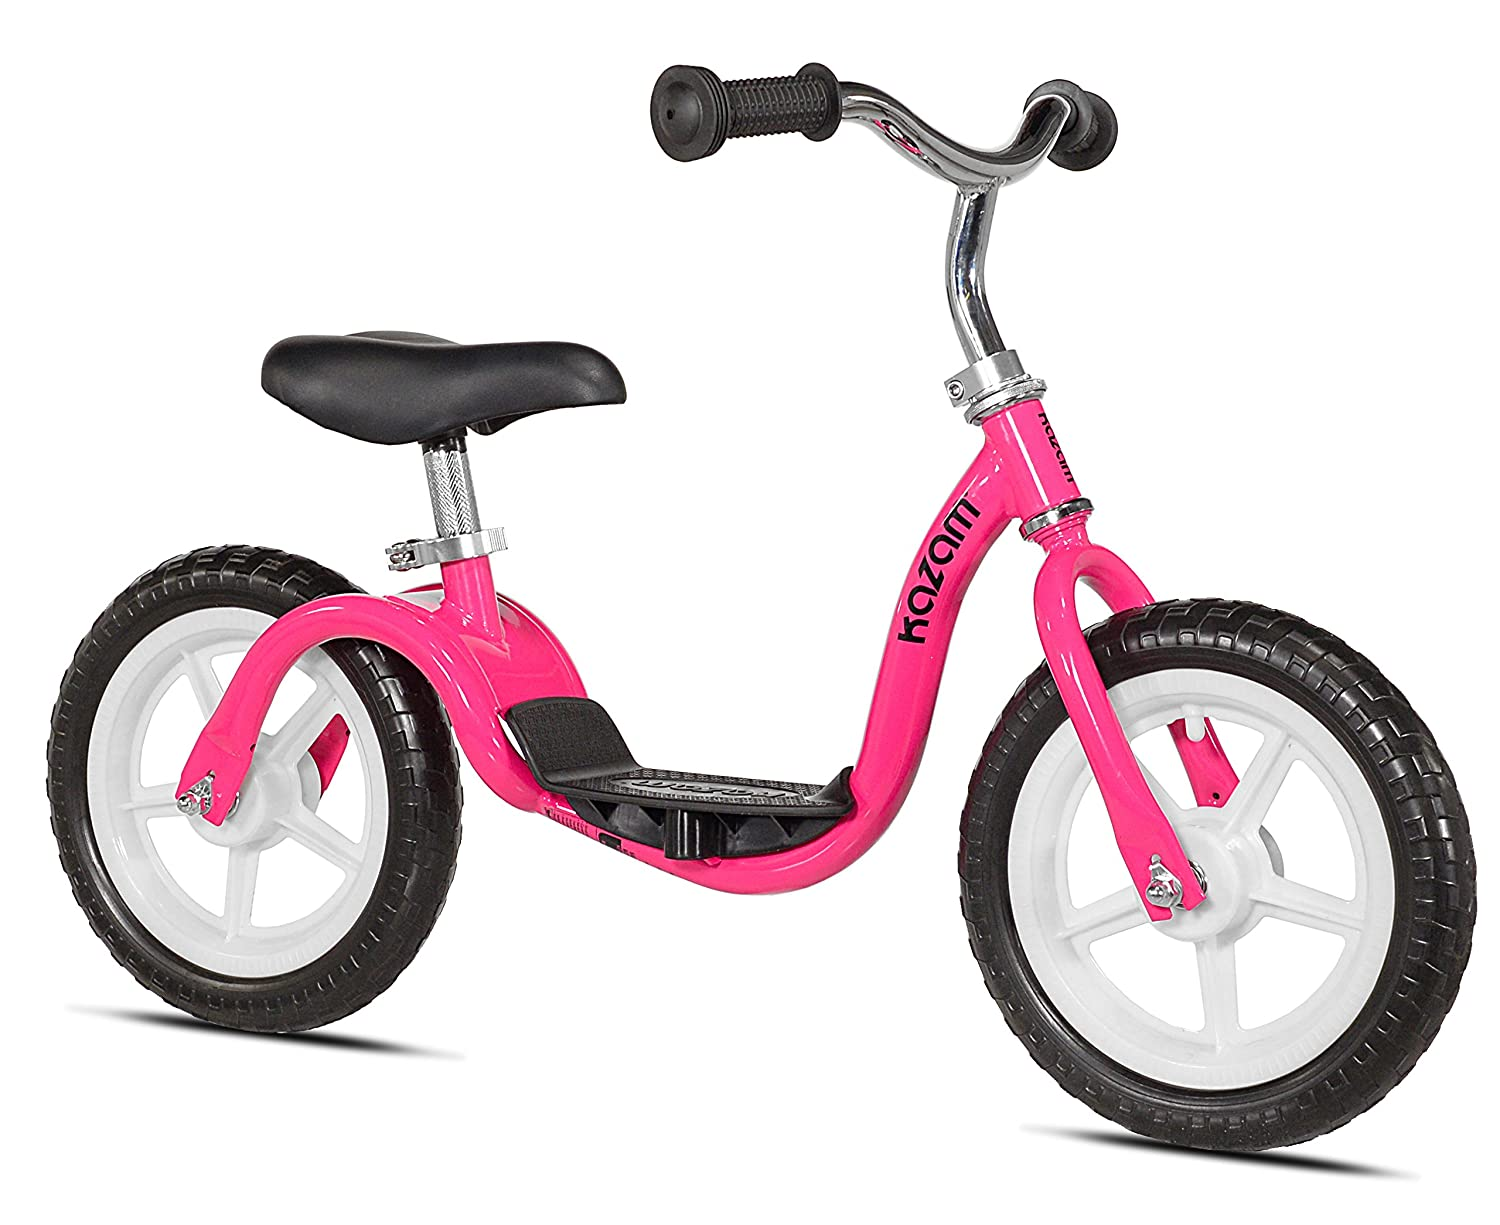 Top 11 Best Balance Bikes for Toddlers (2019 Reviews) 8